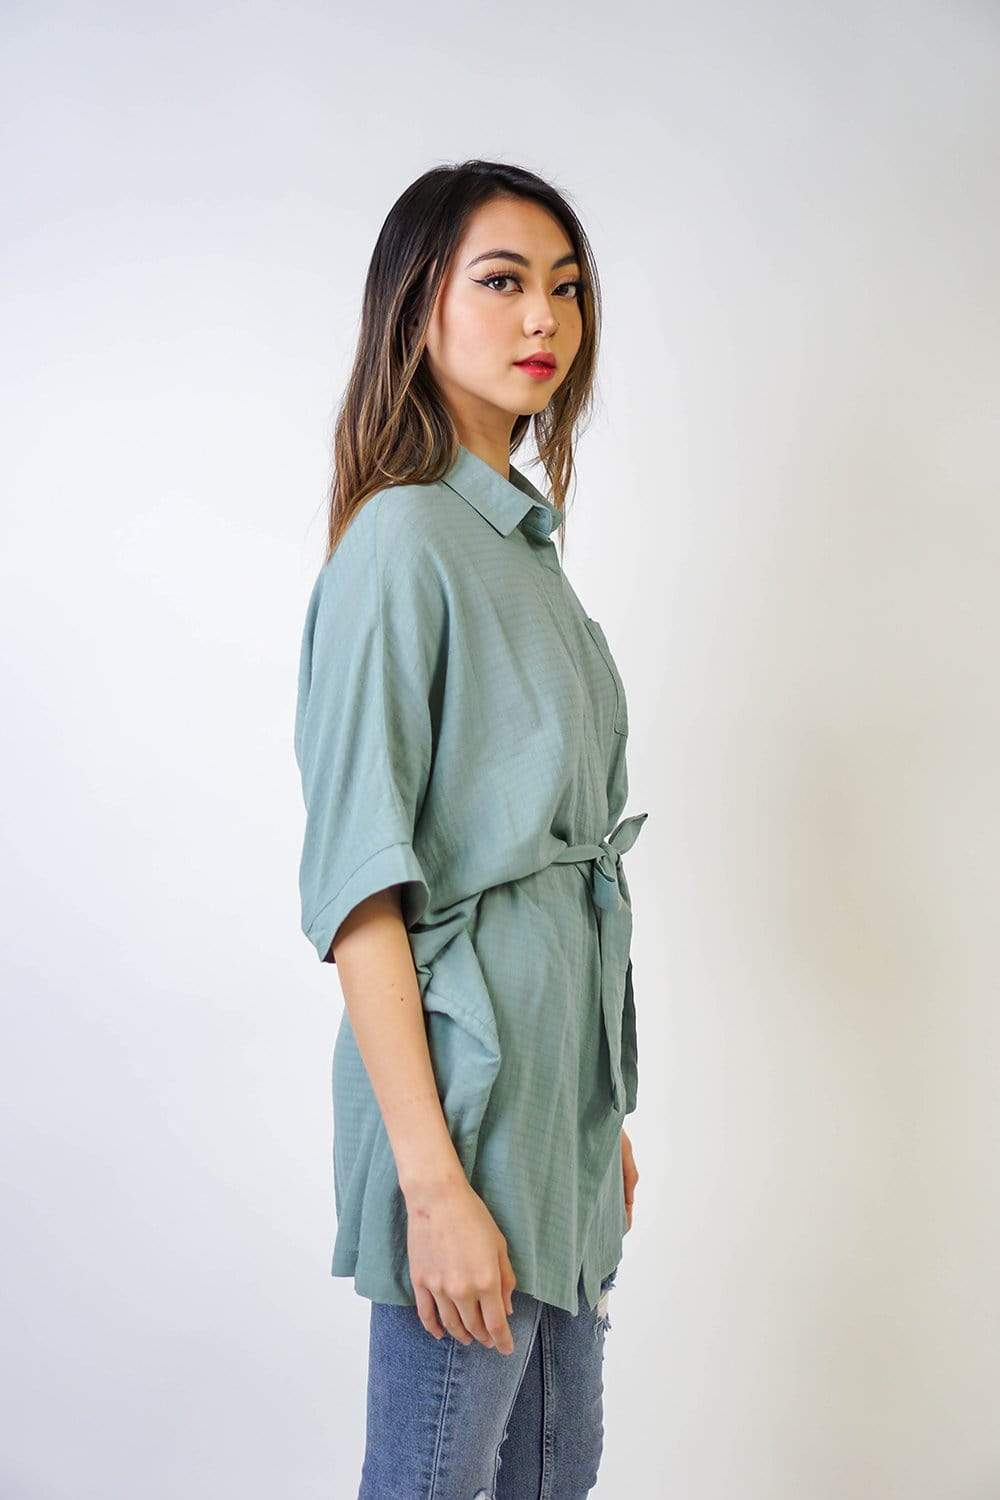 DRESS Sage Kimono Tunic With Sash - Chloe Dao